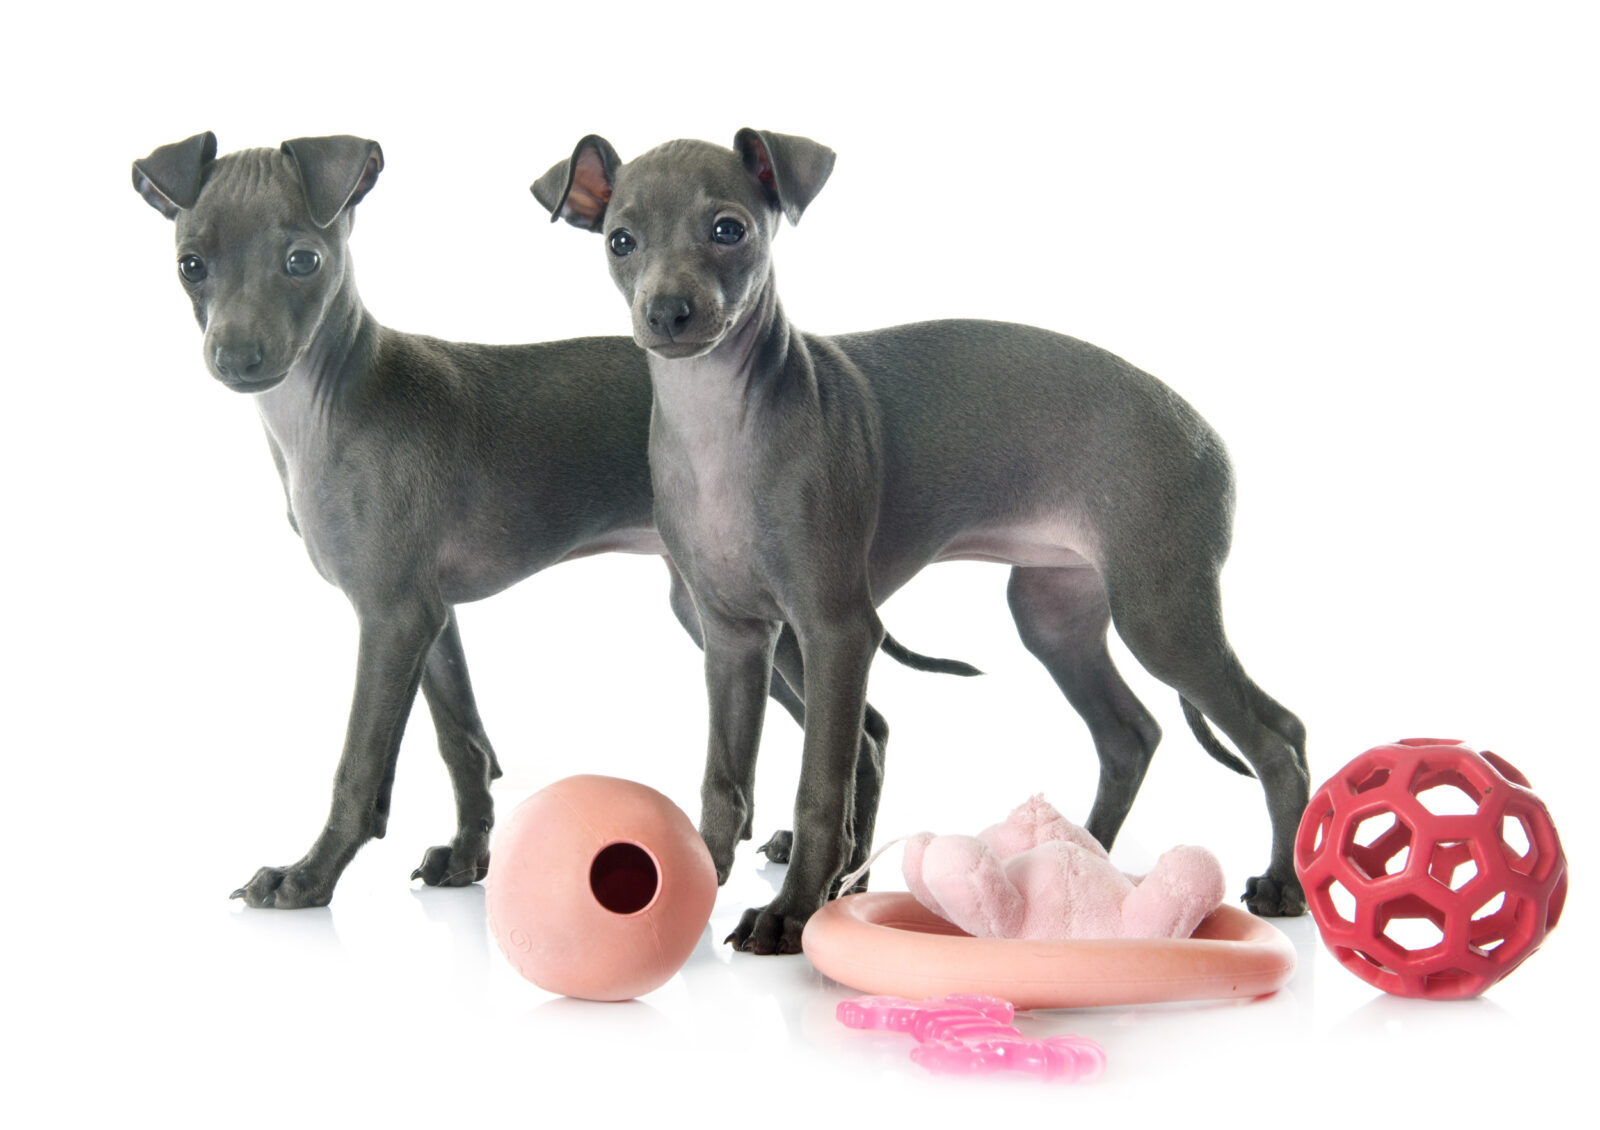 understanding canine body language with different breeds including Italian Greyhound